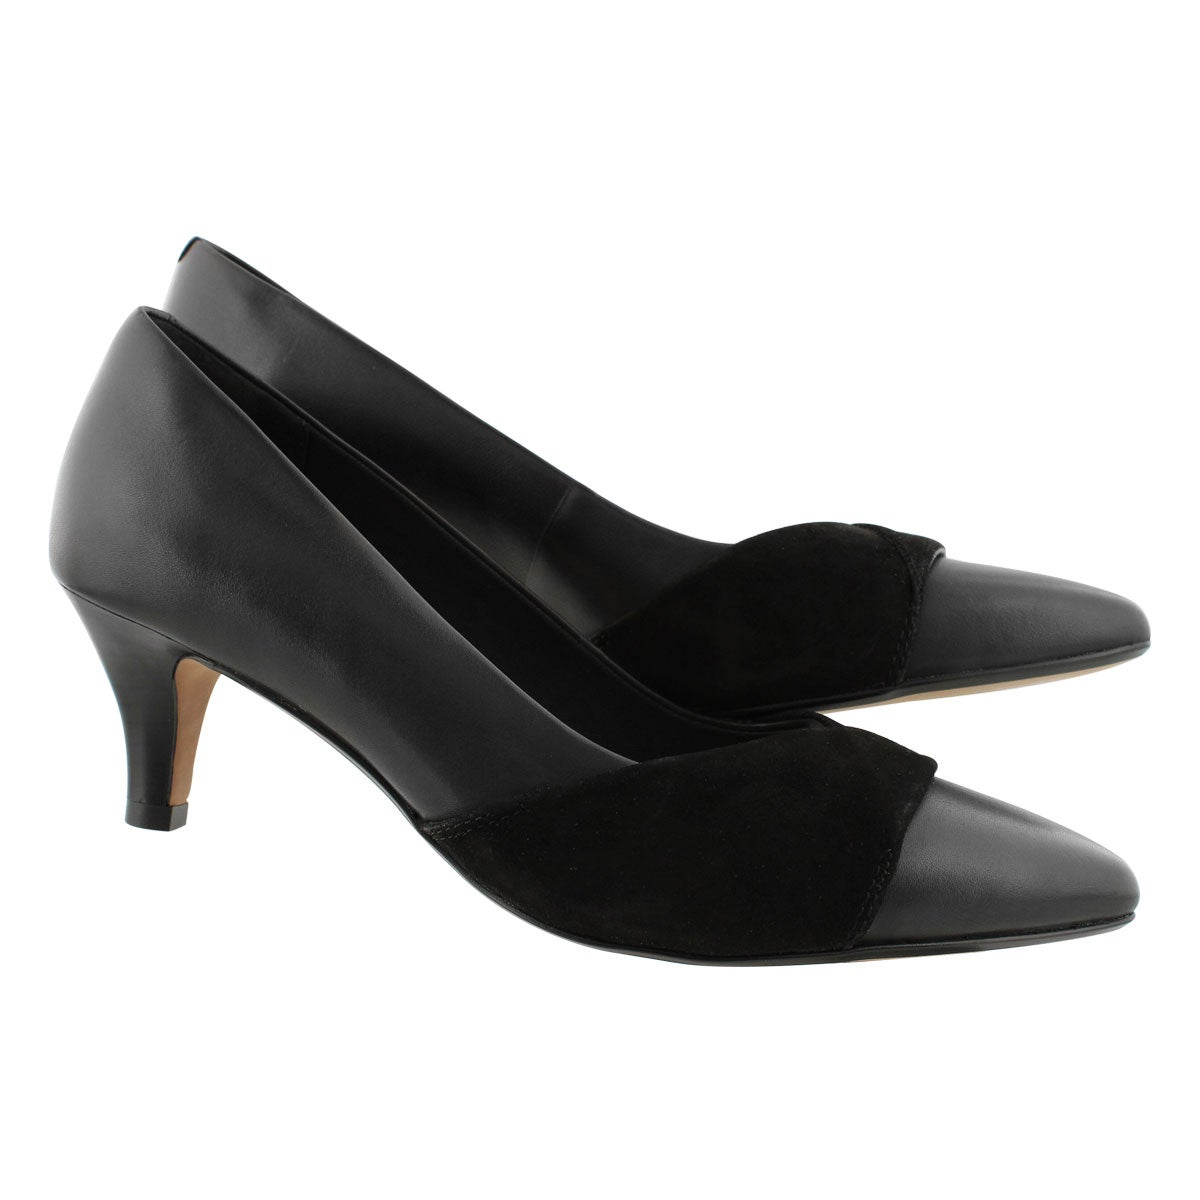 Lds Linvale Vena black dress heel